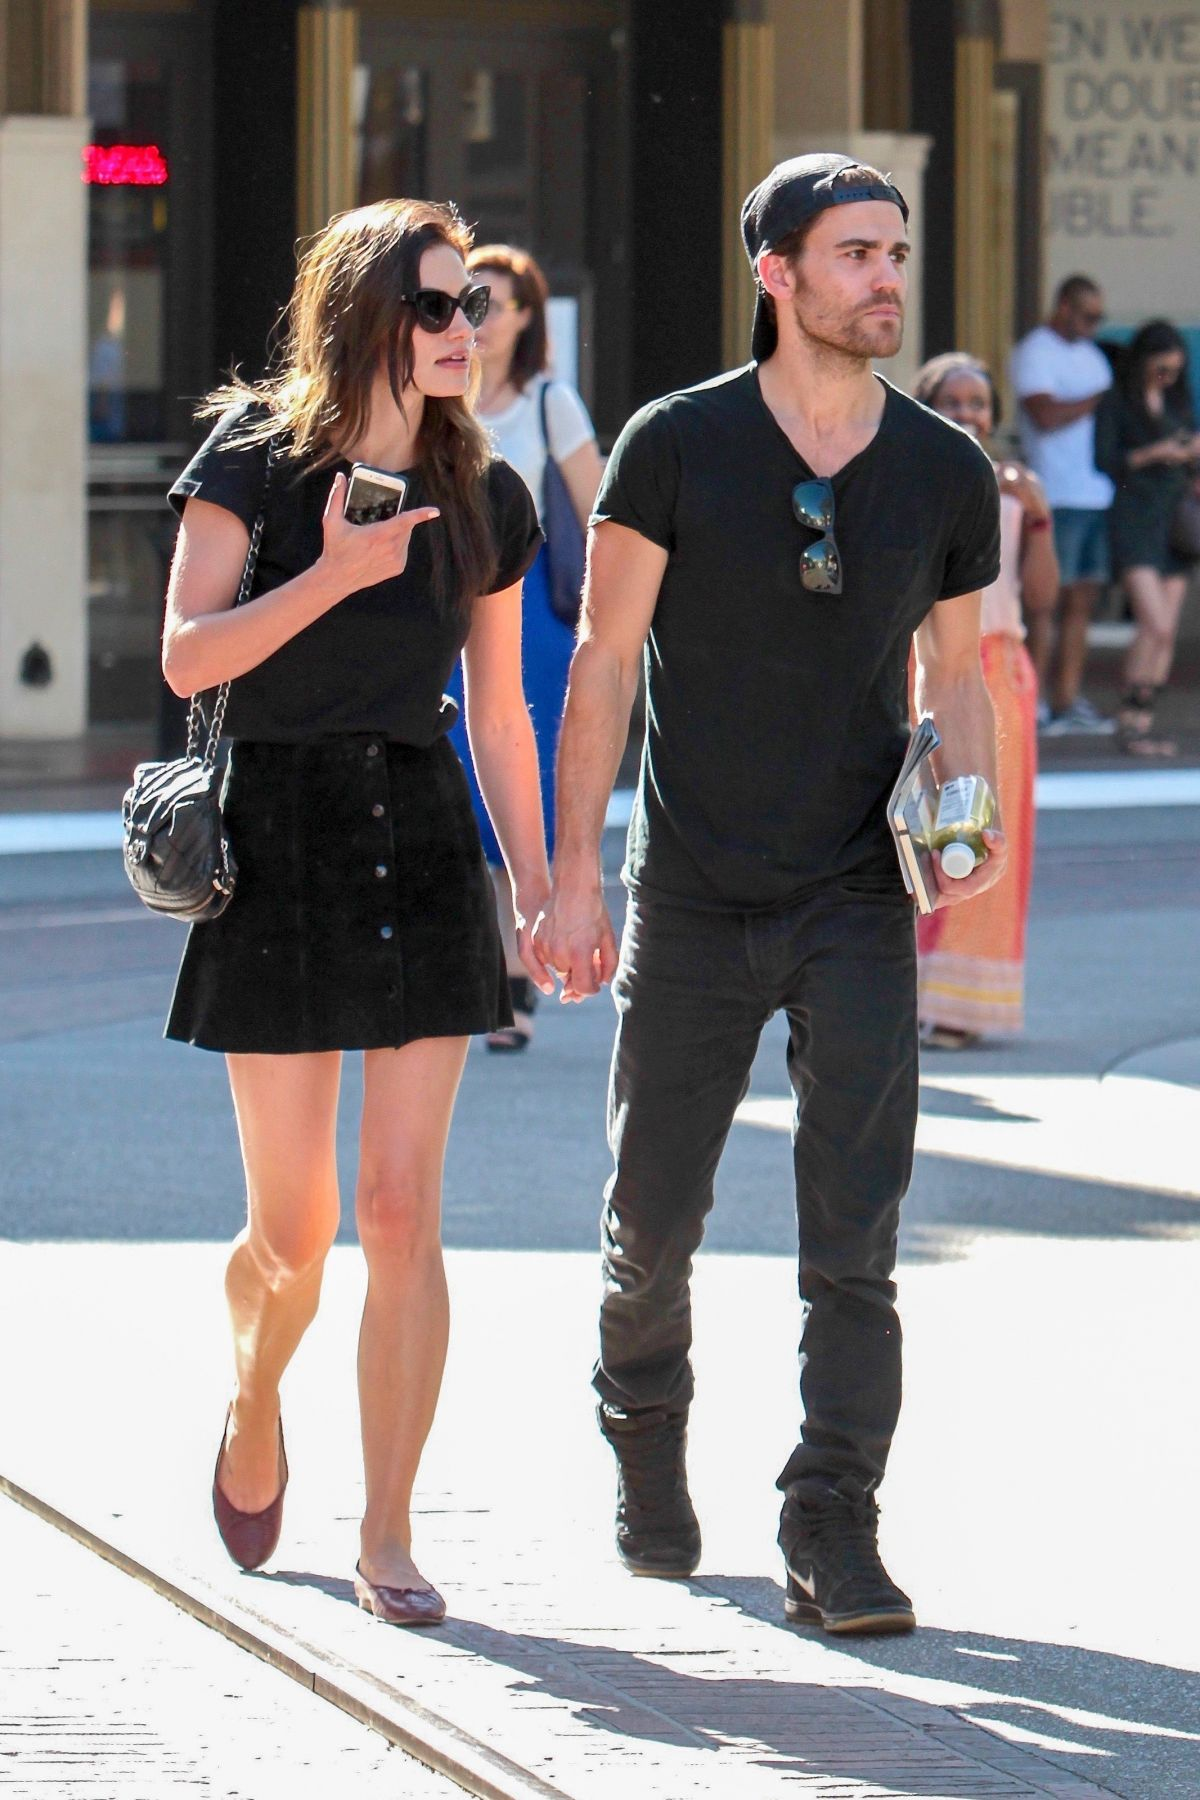 Paul Wesley and Phoebe Tonkin Split Again |Thomas Mcdonell And Phoebe Tonkin